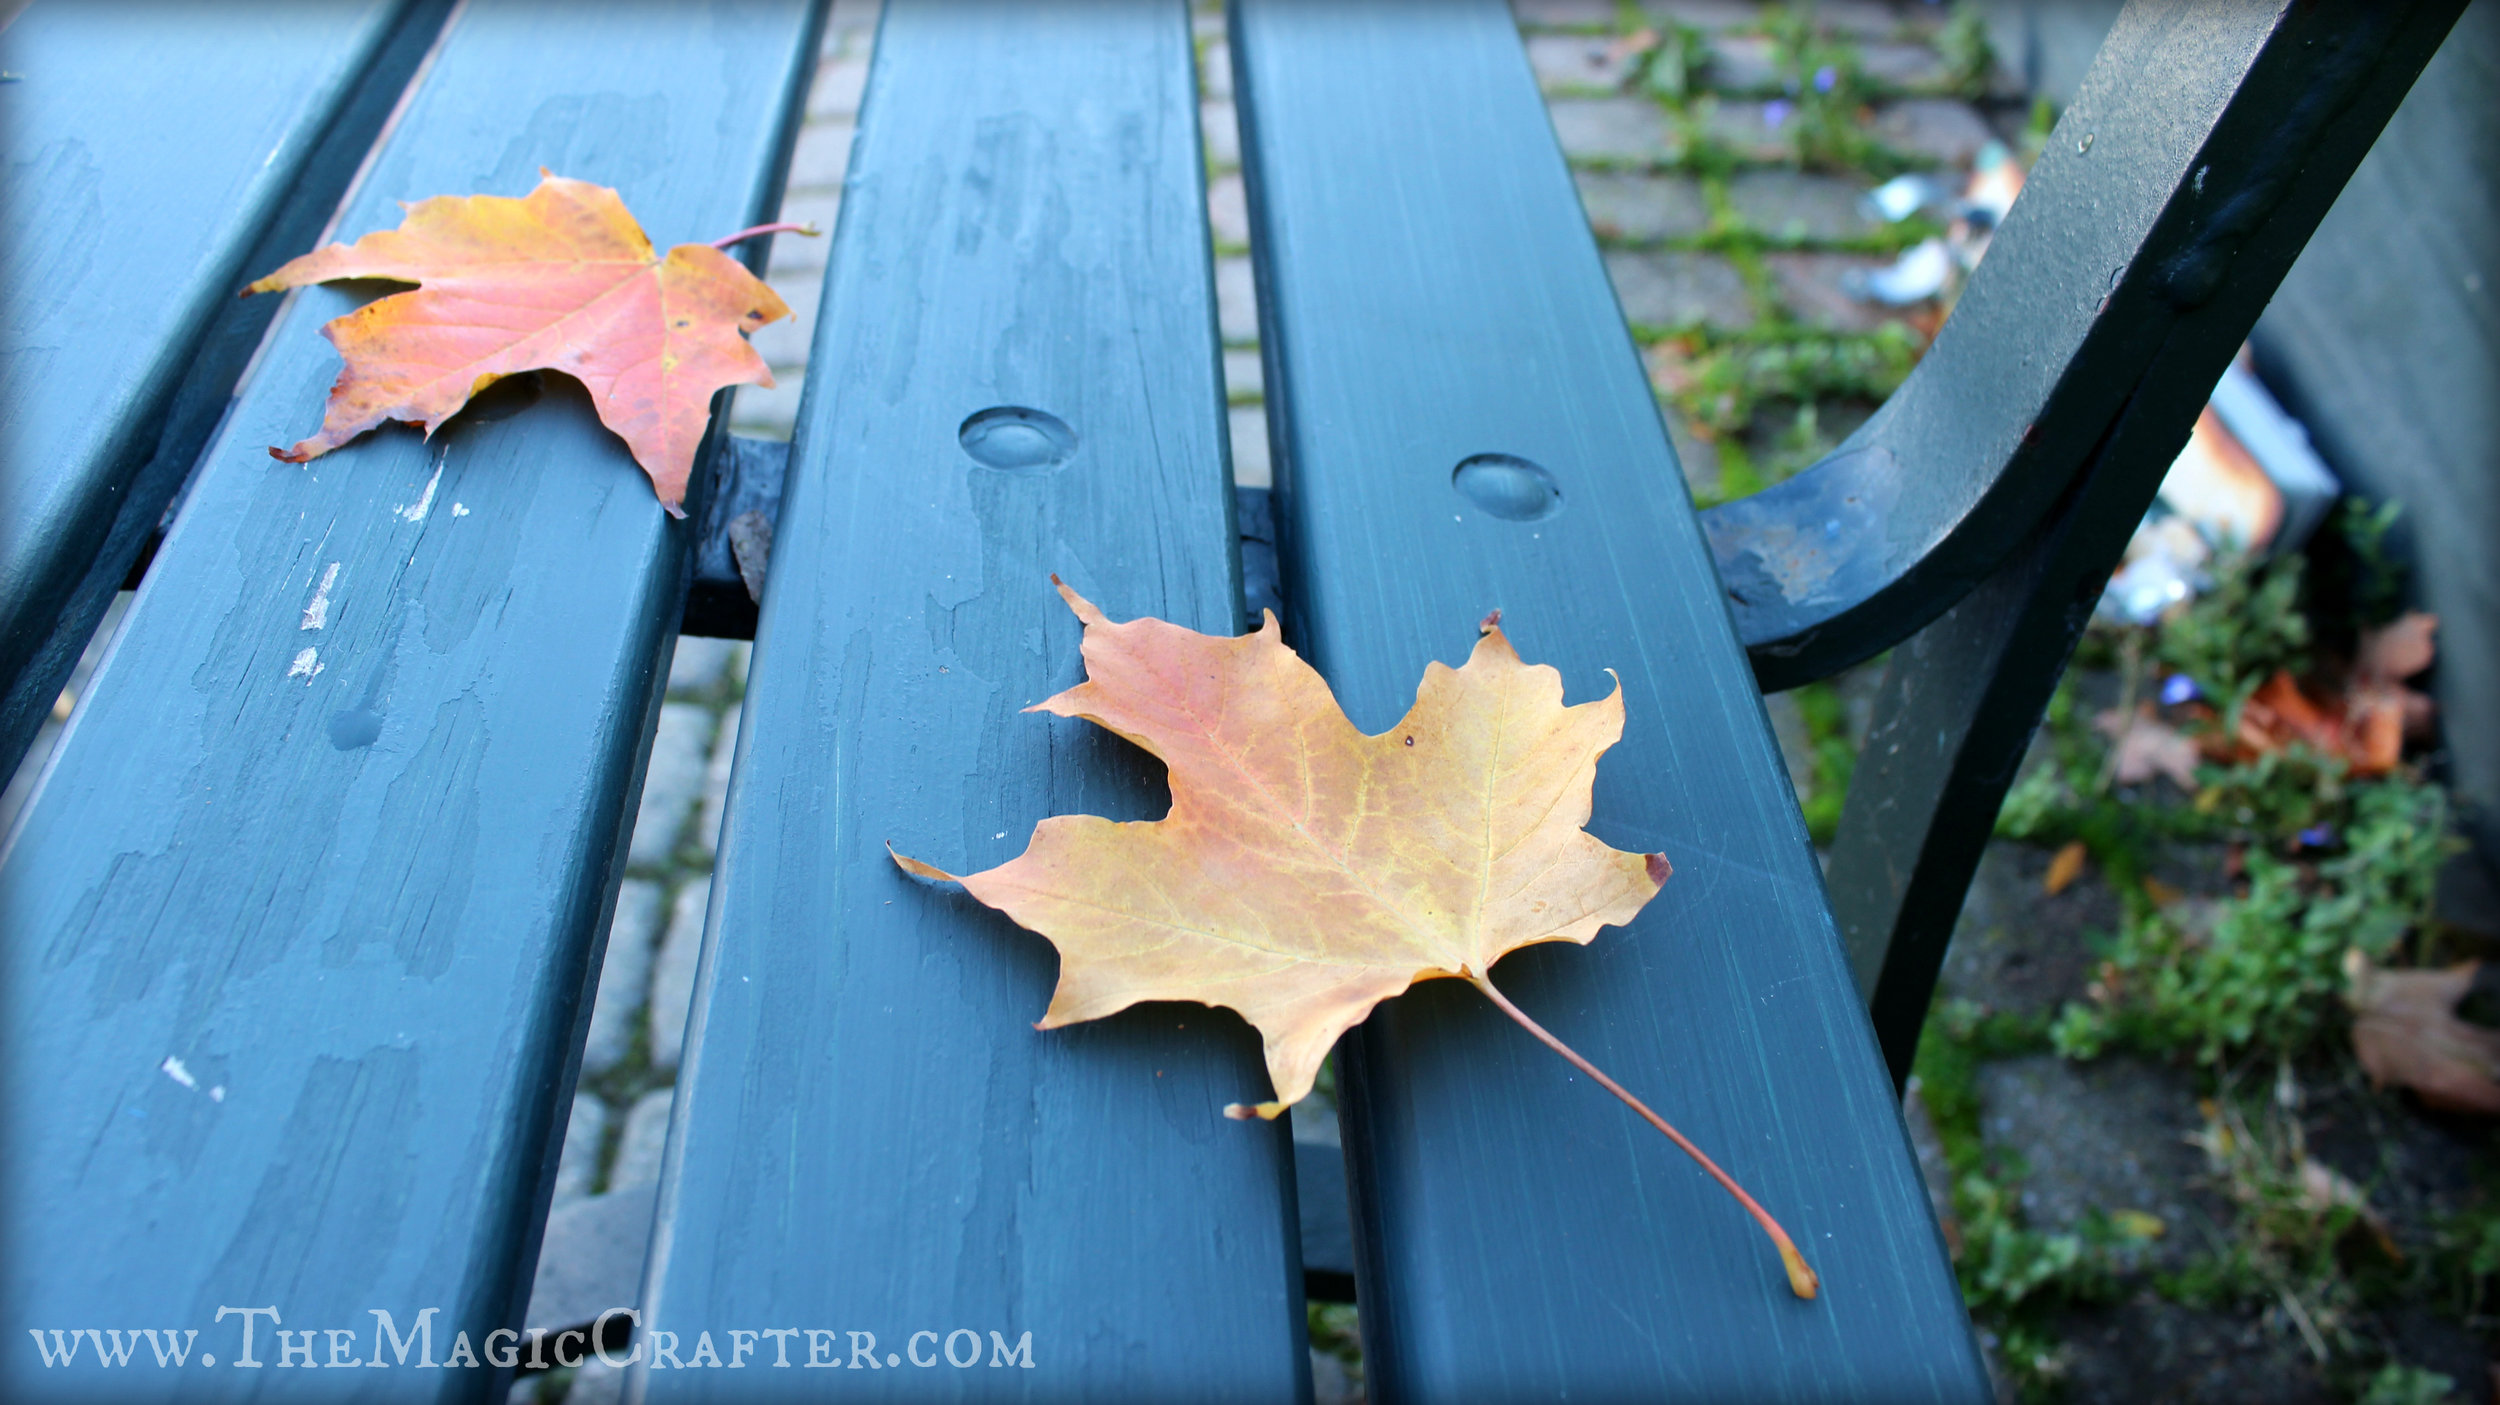 Autumn leaves lay sitting on a bench in Charlevoix, Michigan. Fall is upon us, and the colors this year are simply stunning!